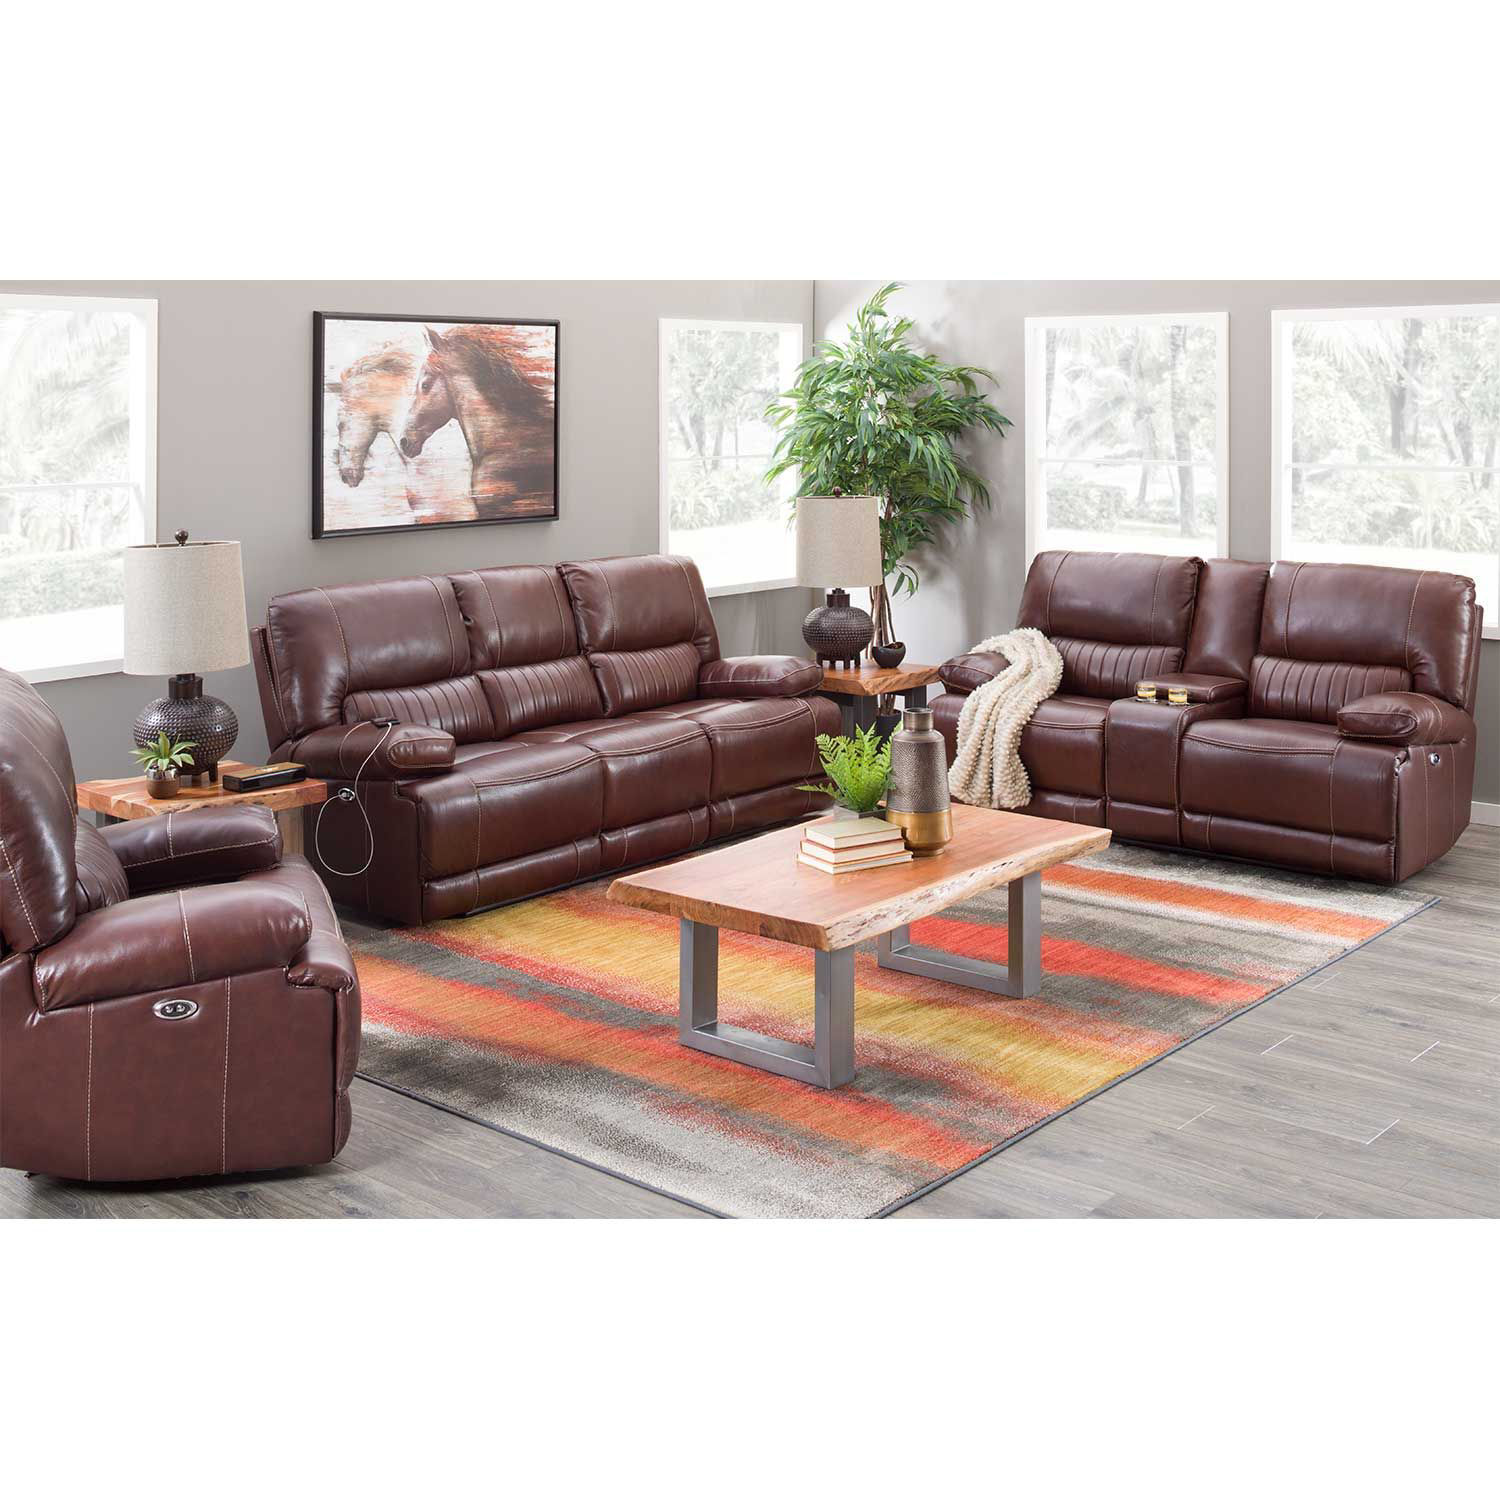 Picture of Rigby Brown Leather Recliner